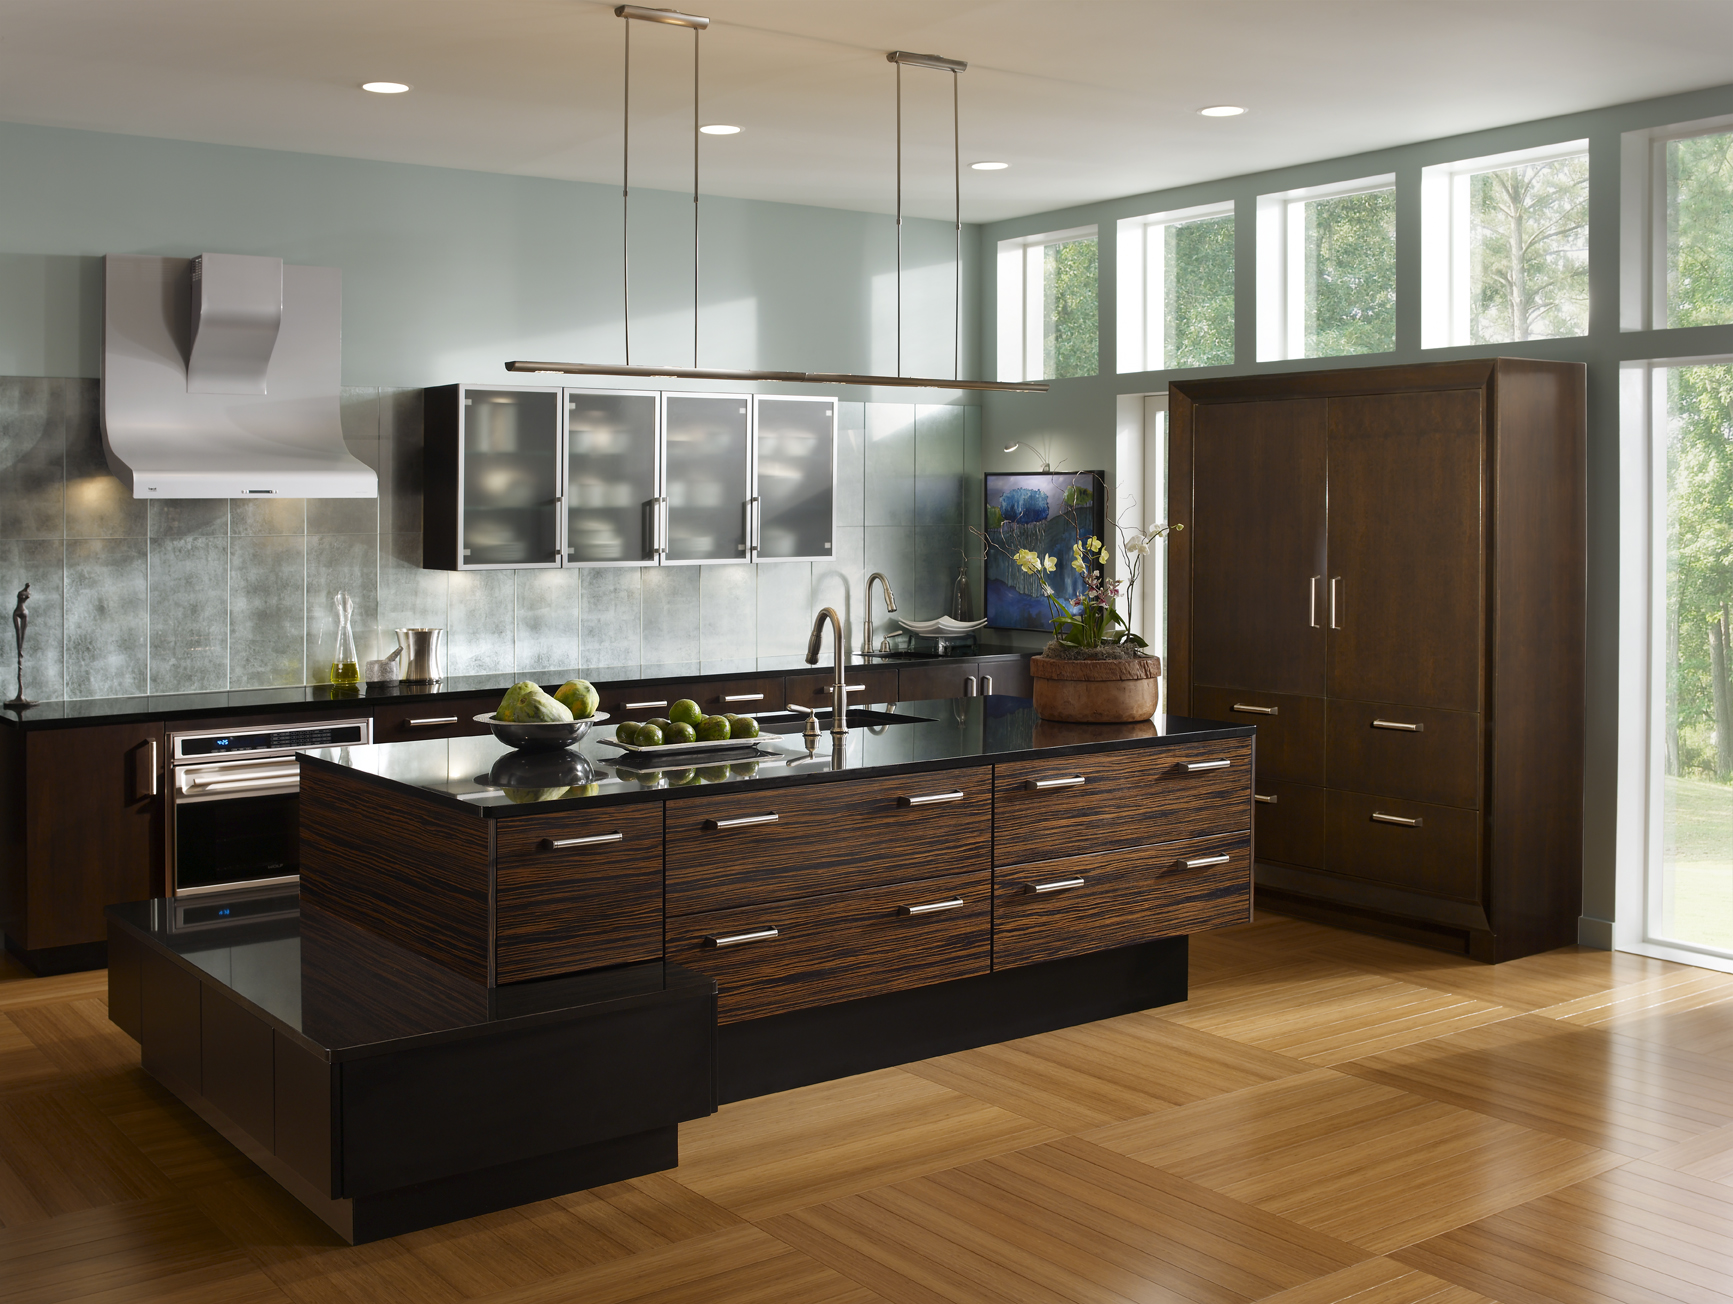 Connoisseur Kitchen by Wood-Mode